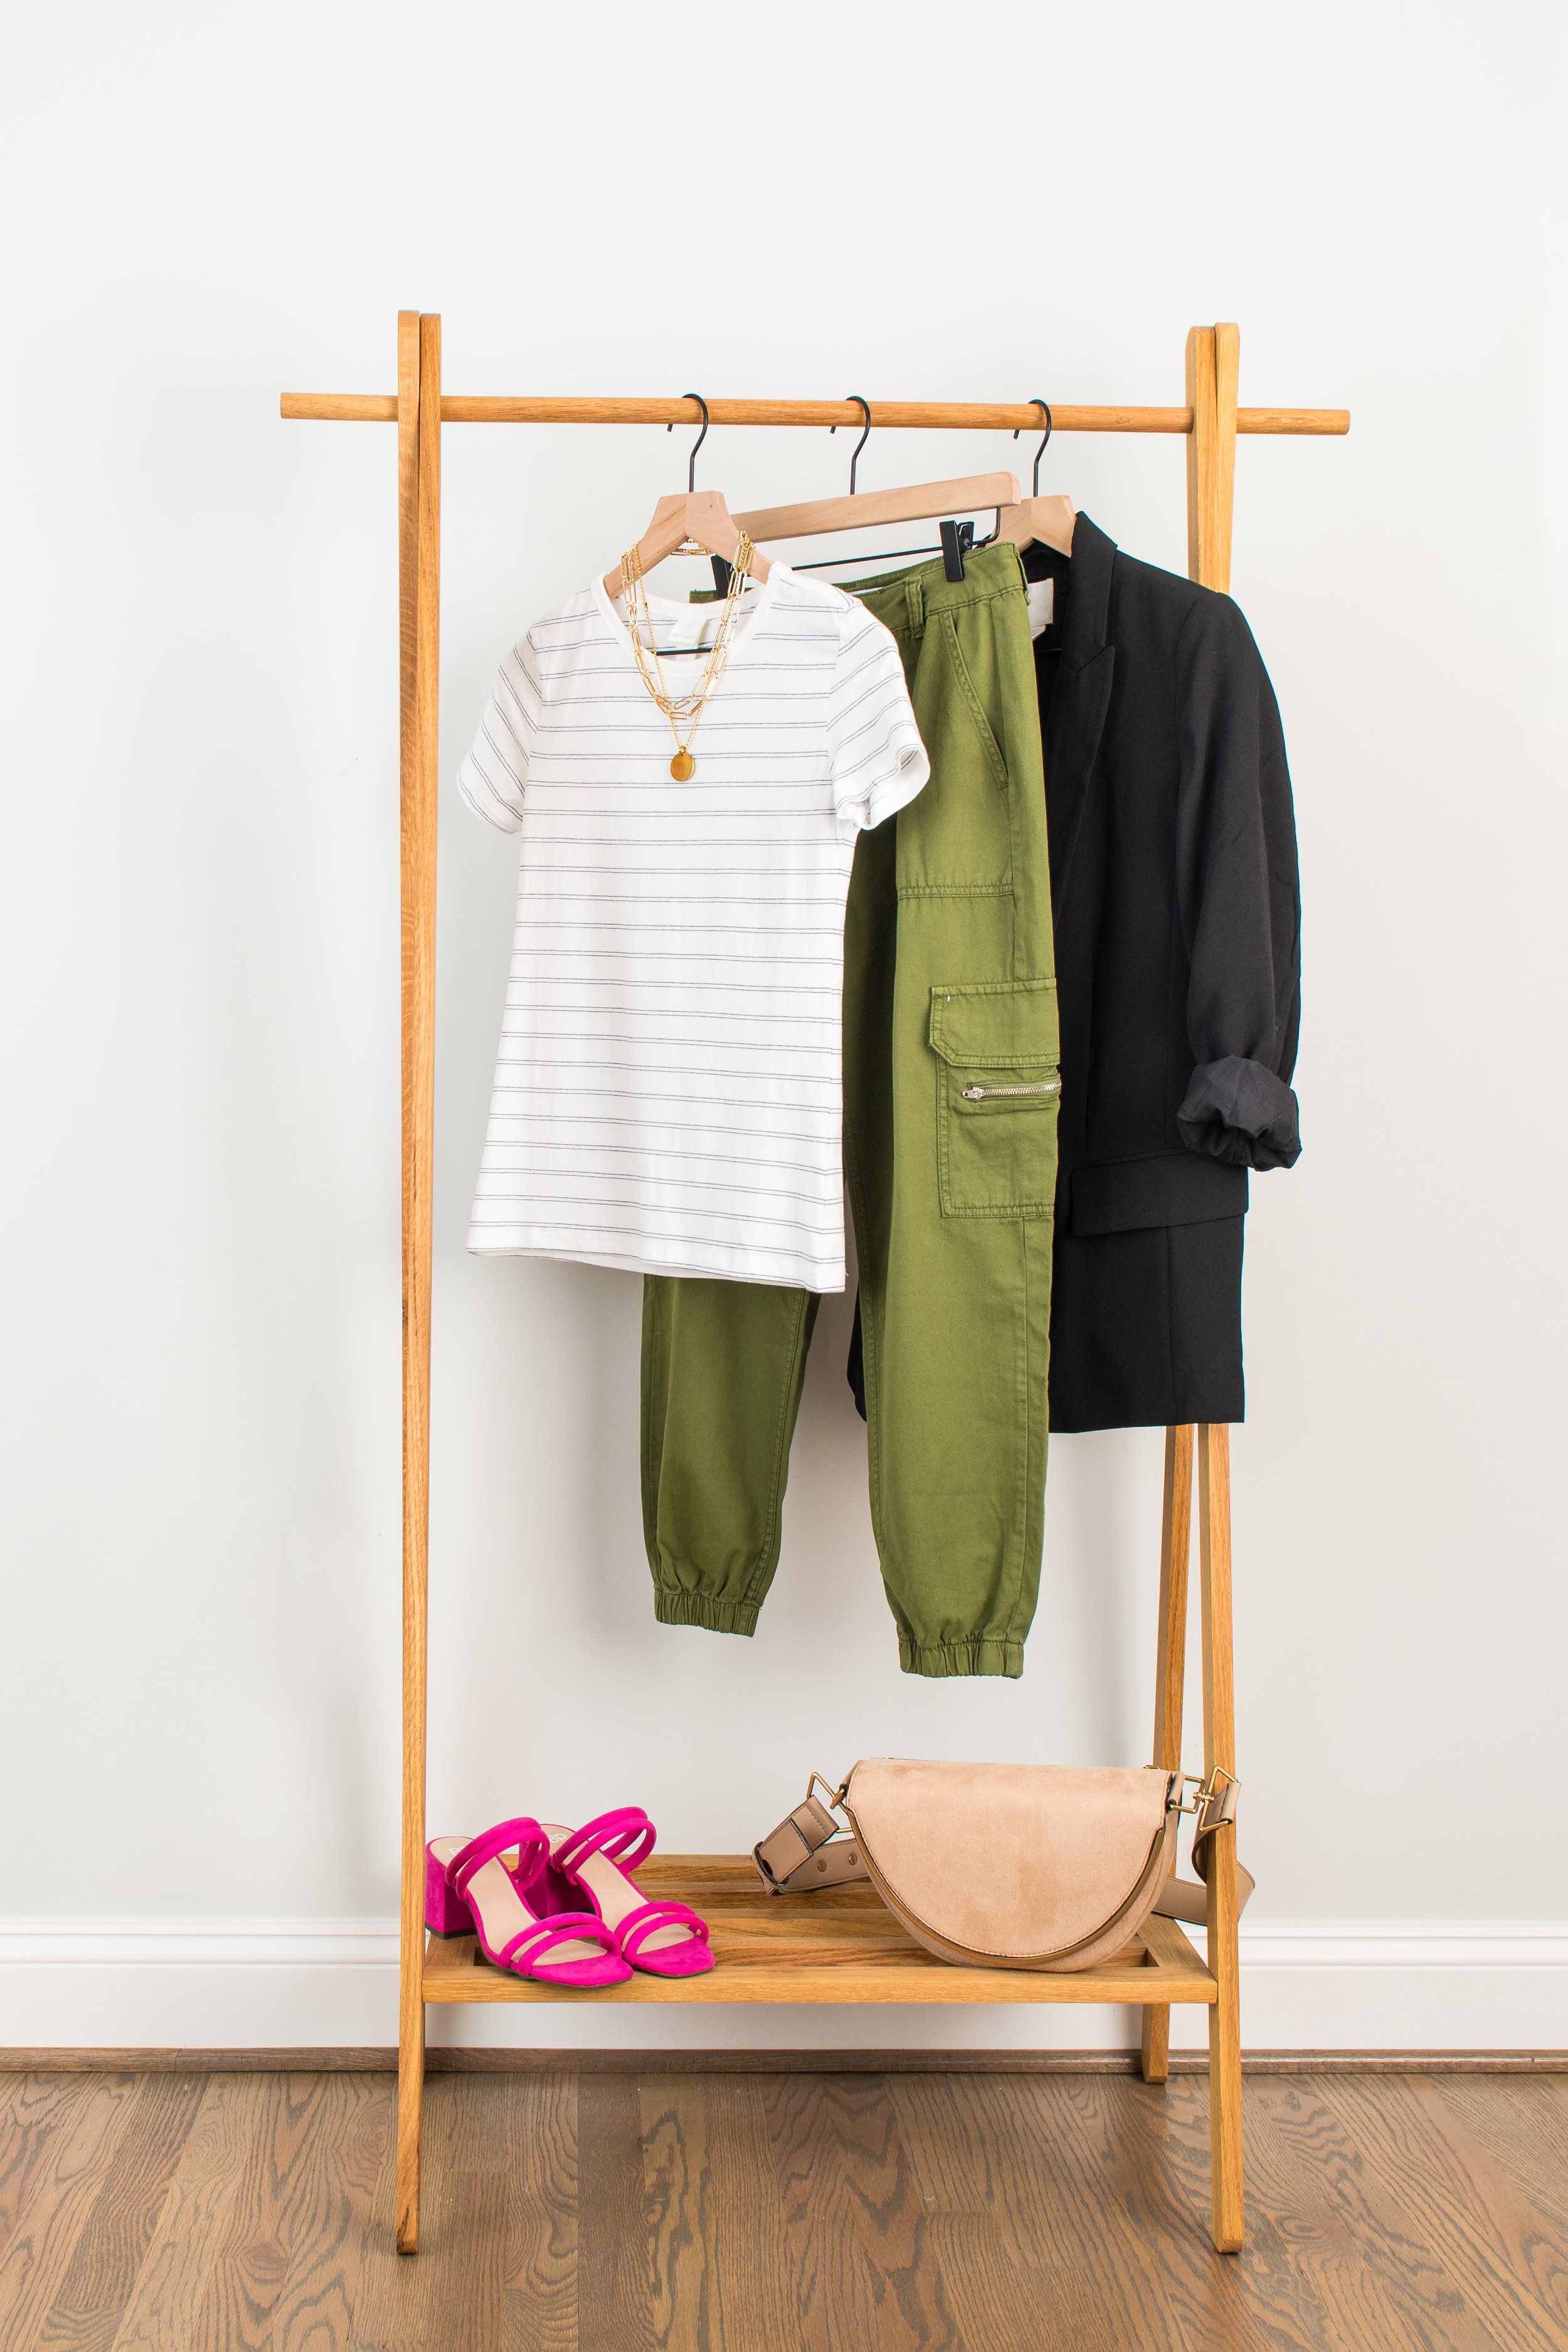 Casual With a Pop of Color - Wear to: Dinner at friend's houseStriped Tee: 1 // 2 // 3Cargo Pants: 1 /// 2 // 3Oversized Blazer: 1 // 2 // 3Colored Sandals: 1 // 2 // 3Necklaces: 1 // 2 // 3Bag : 1 // 2 // 3